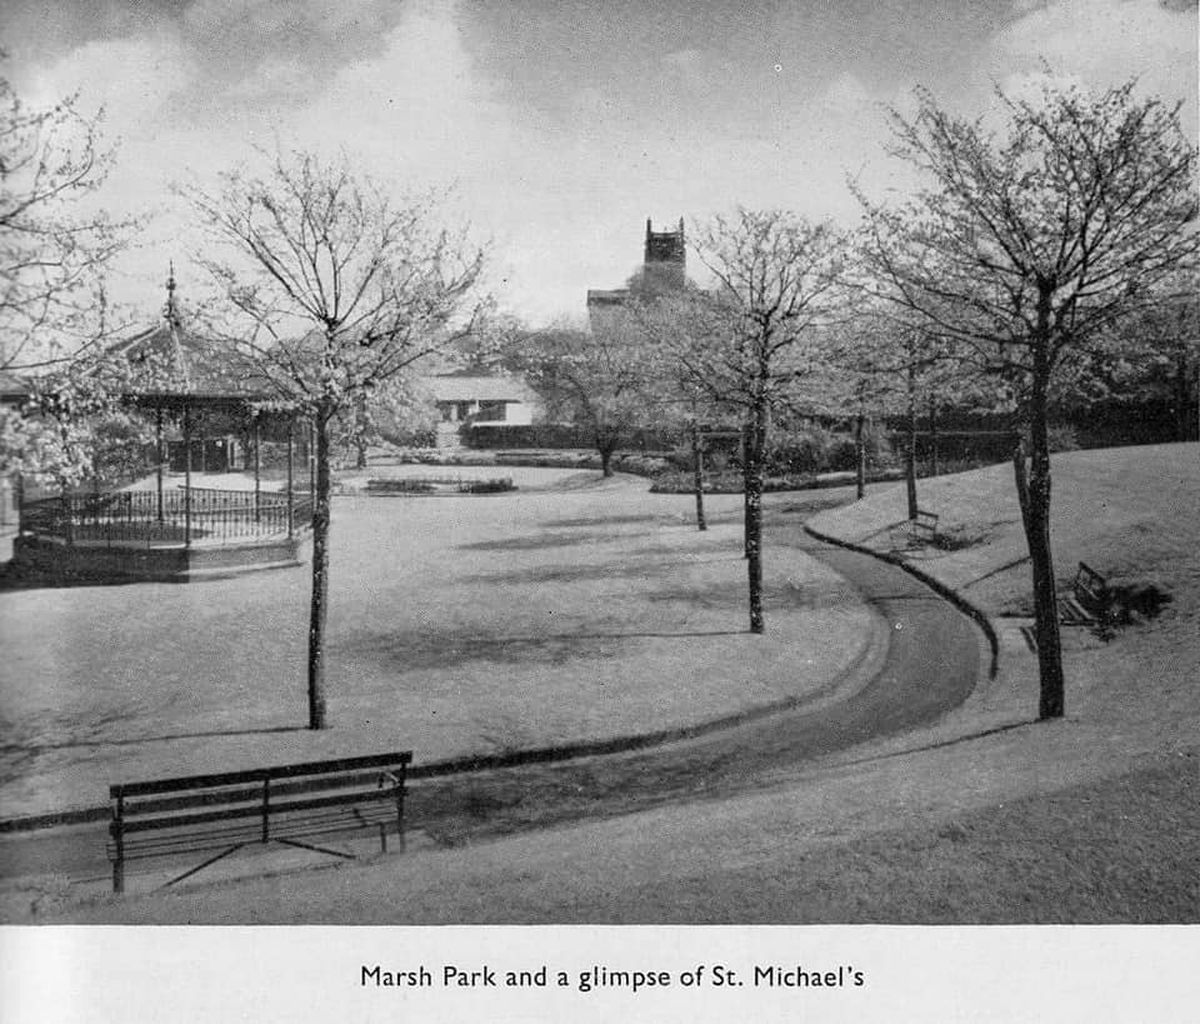 Marsh Park in approximately 1920s after it opened. Photo: Fompalf Friends of Marsh Park & Lawyers Field Brierley Hill & Dennis R Whittaker